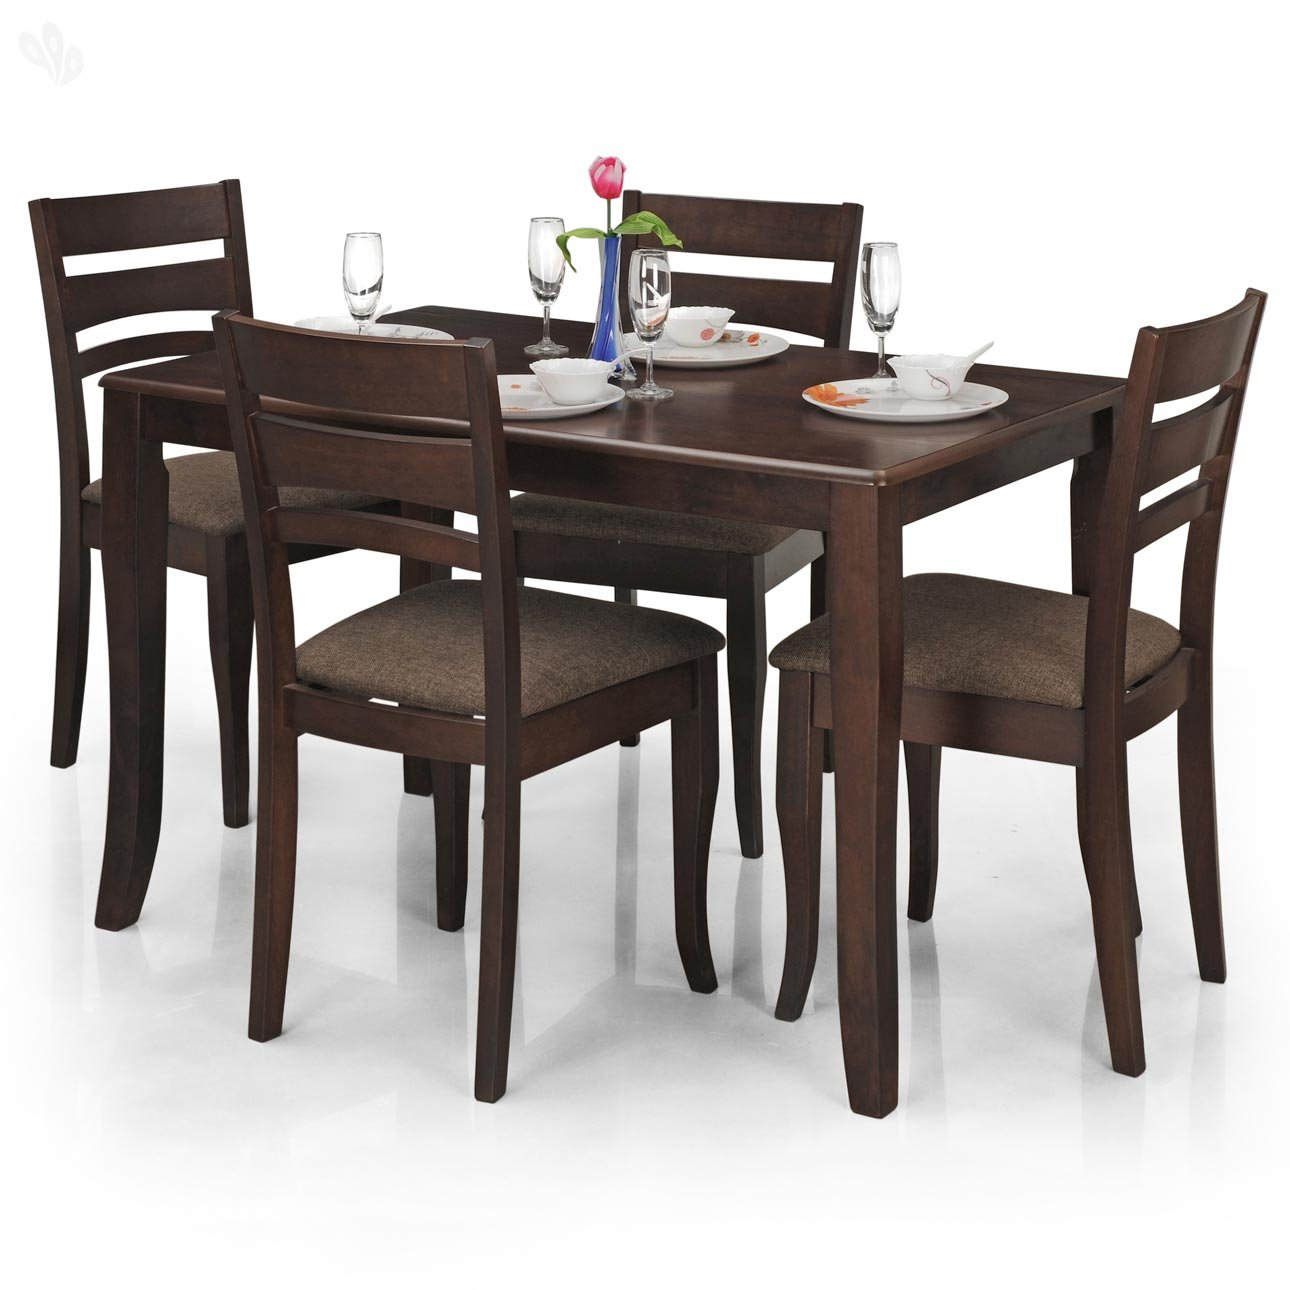 Tables And Chairs Price List : 71O6vzWcuULSL1290 from nychinese.us size 1290 x 1290 jpeg 137kB